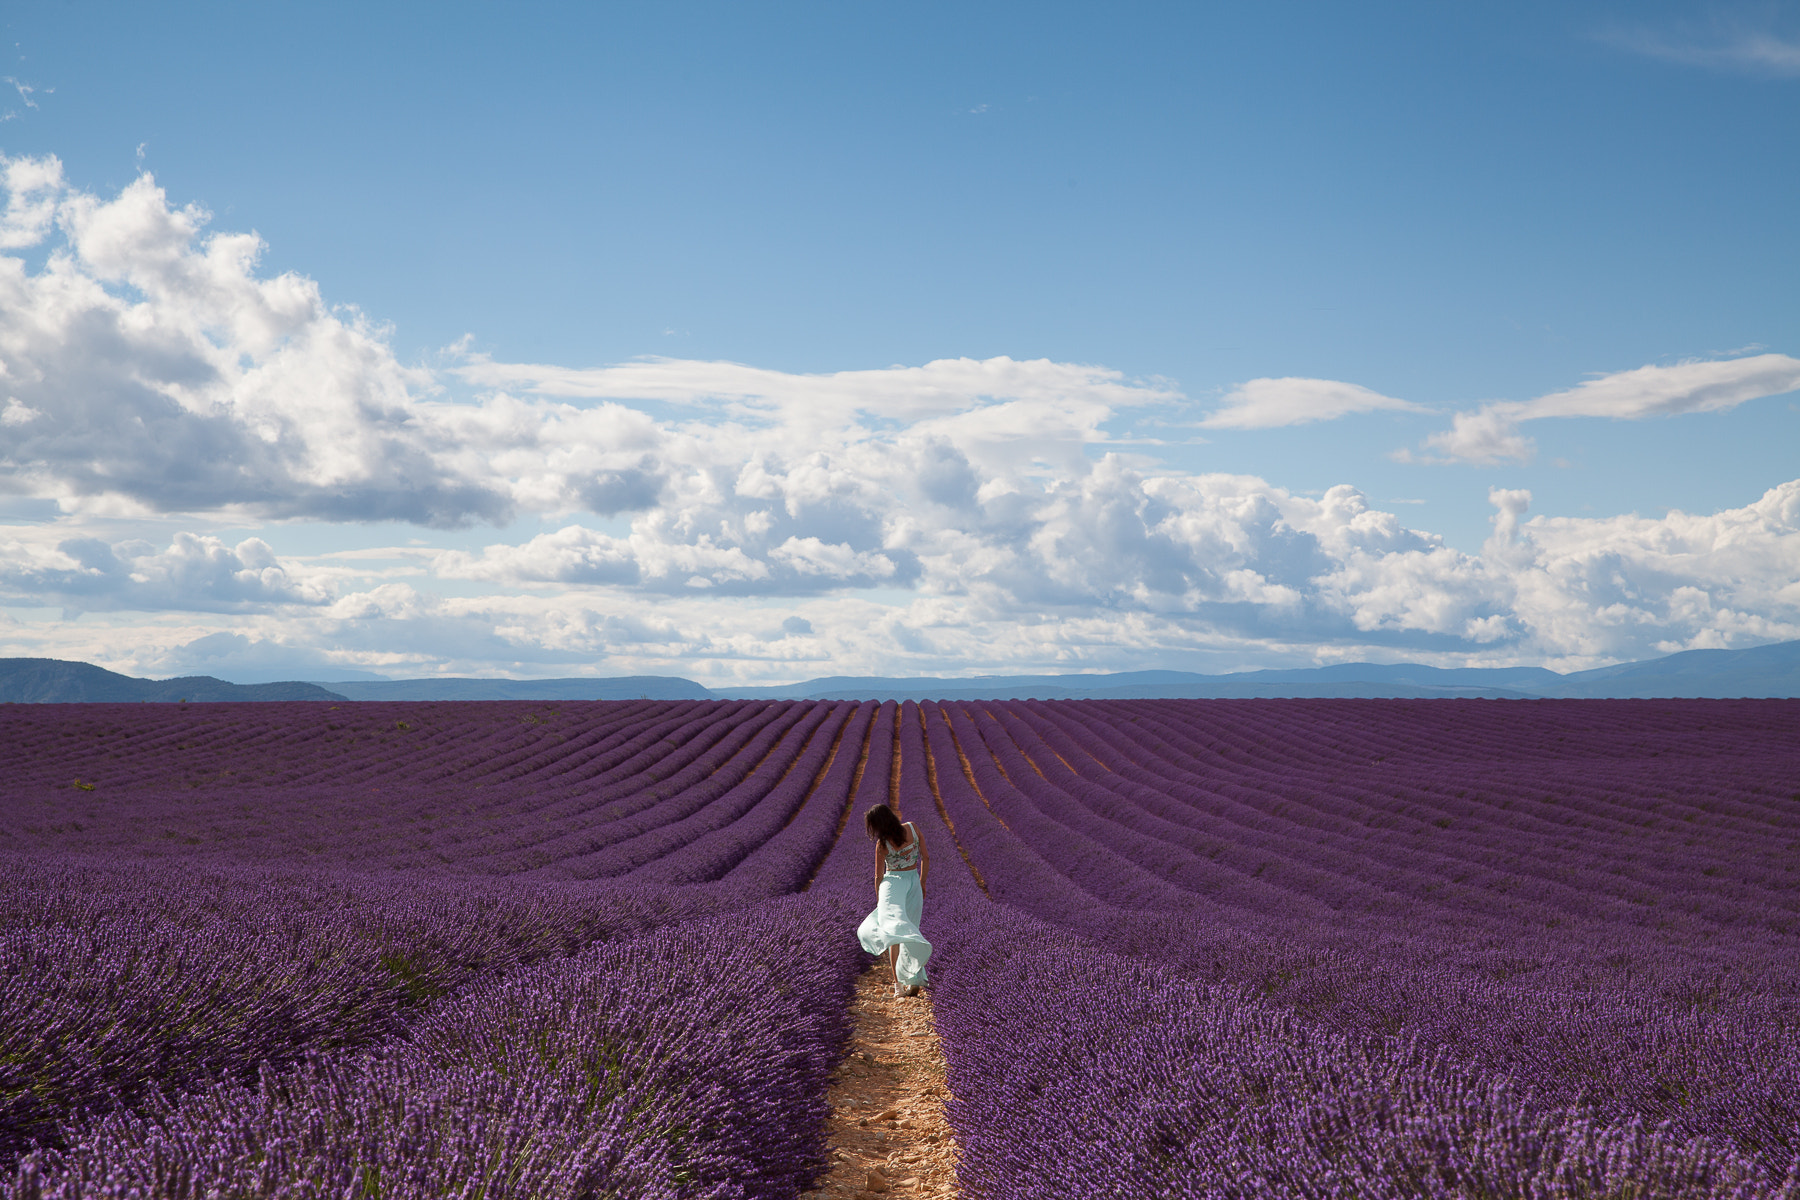 Photograph Going through my dreams in Valensole by Jenny Coppe on 500px